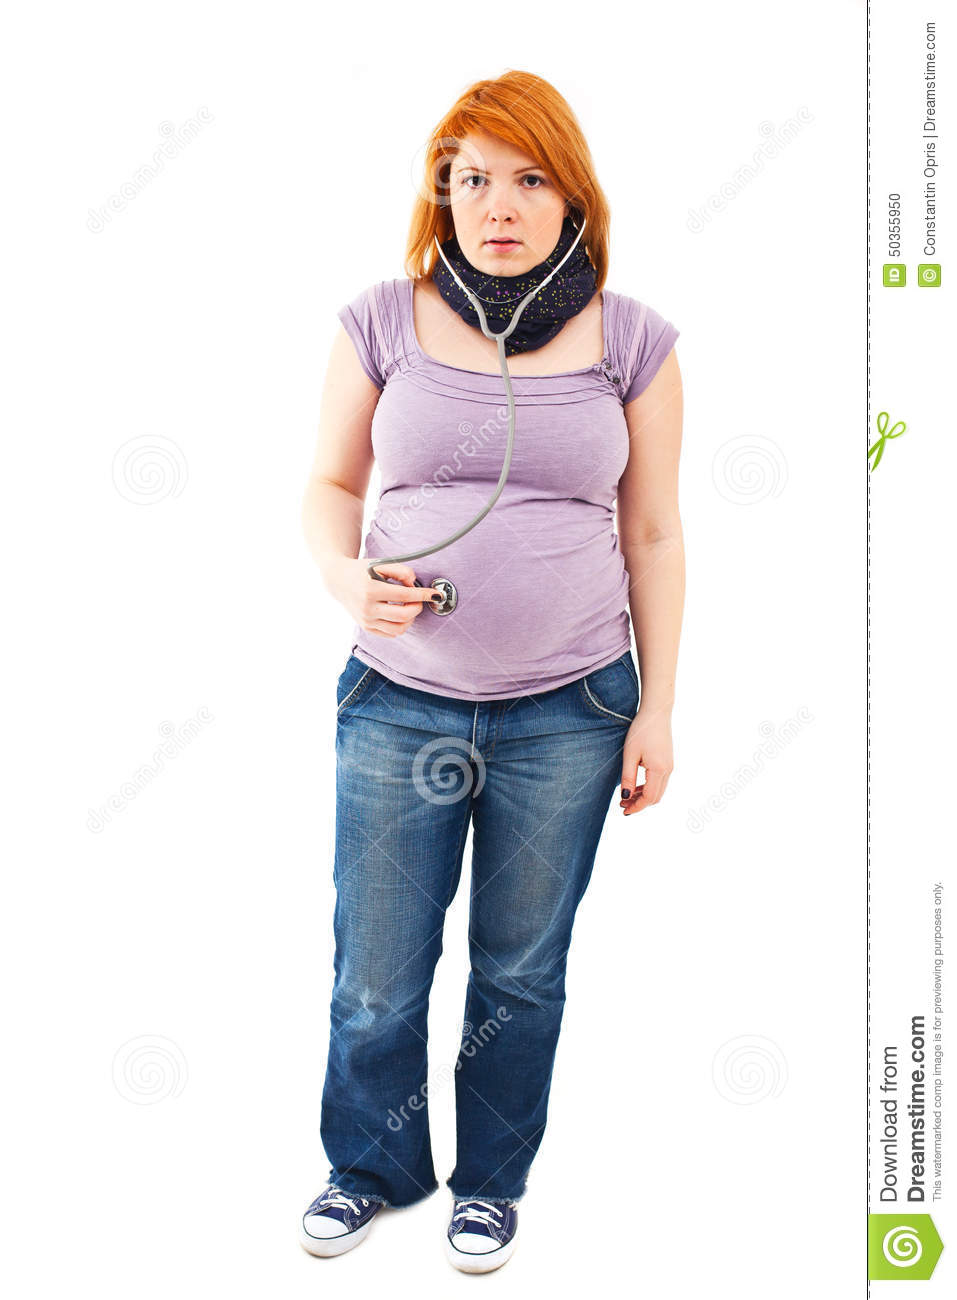 Pregnant woman with stethoscope